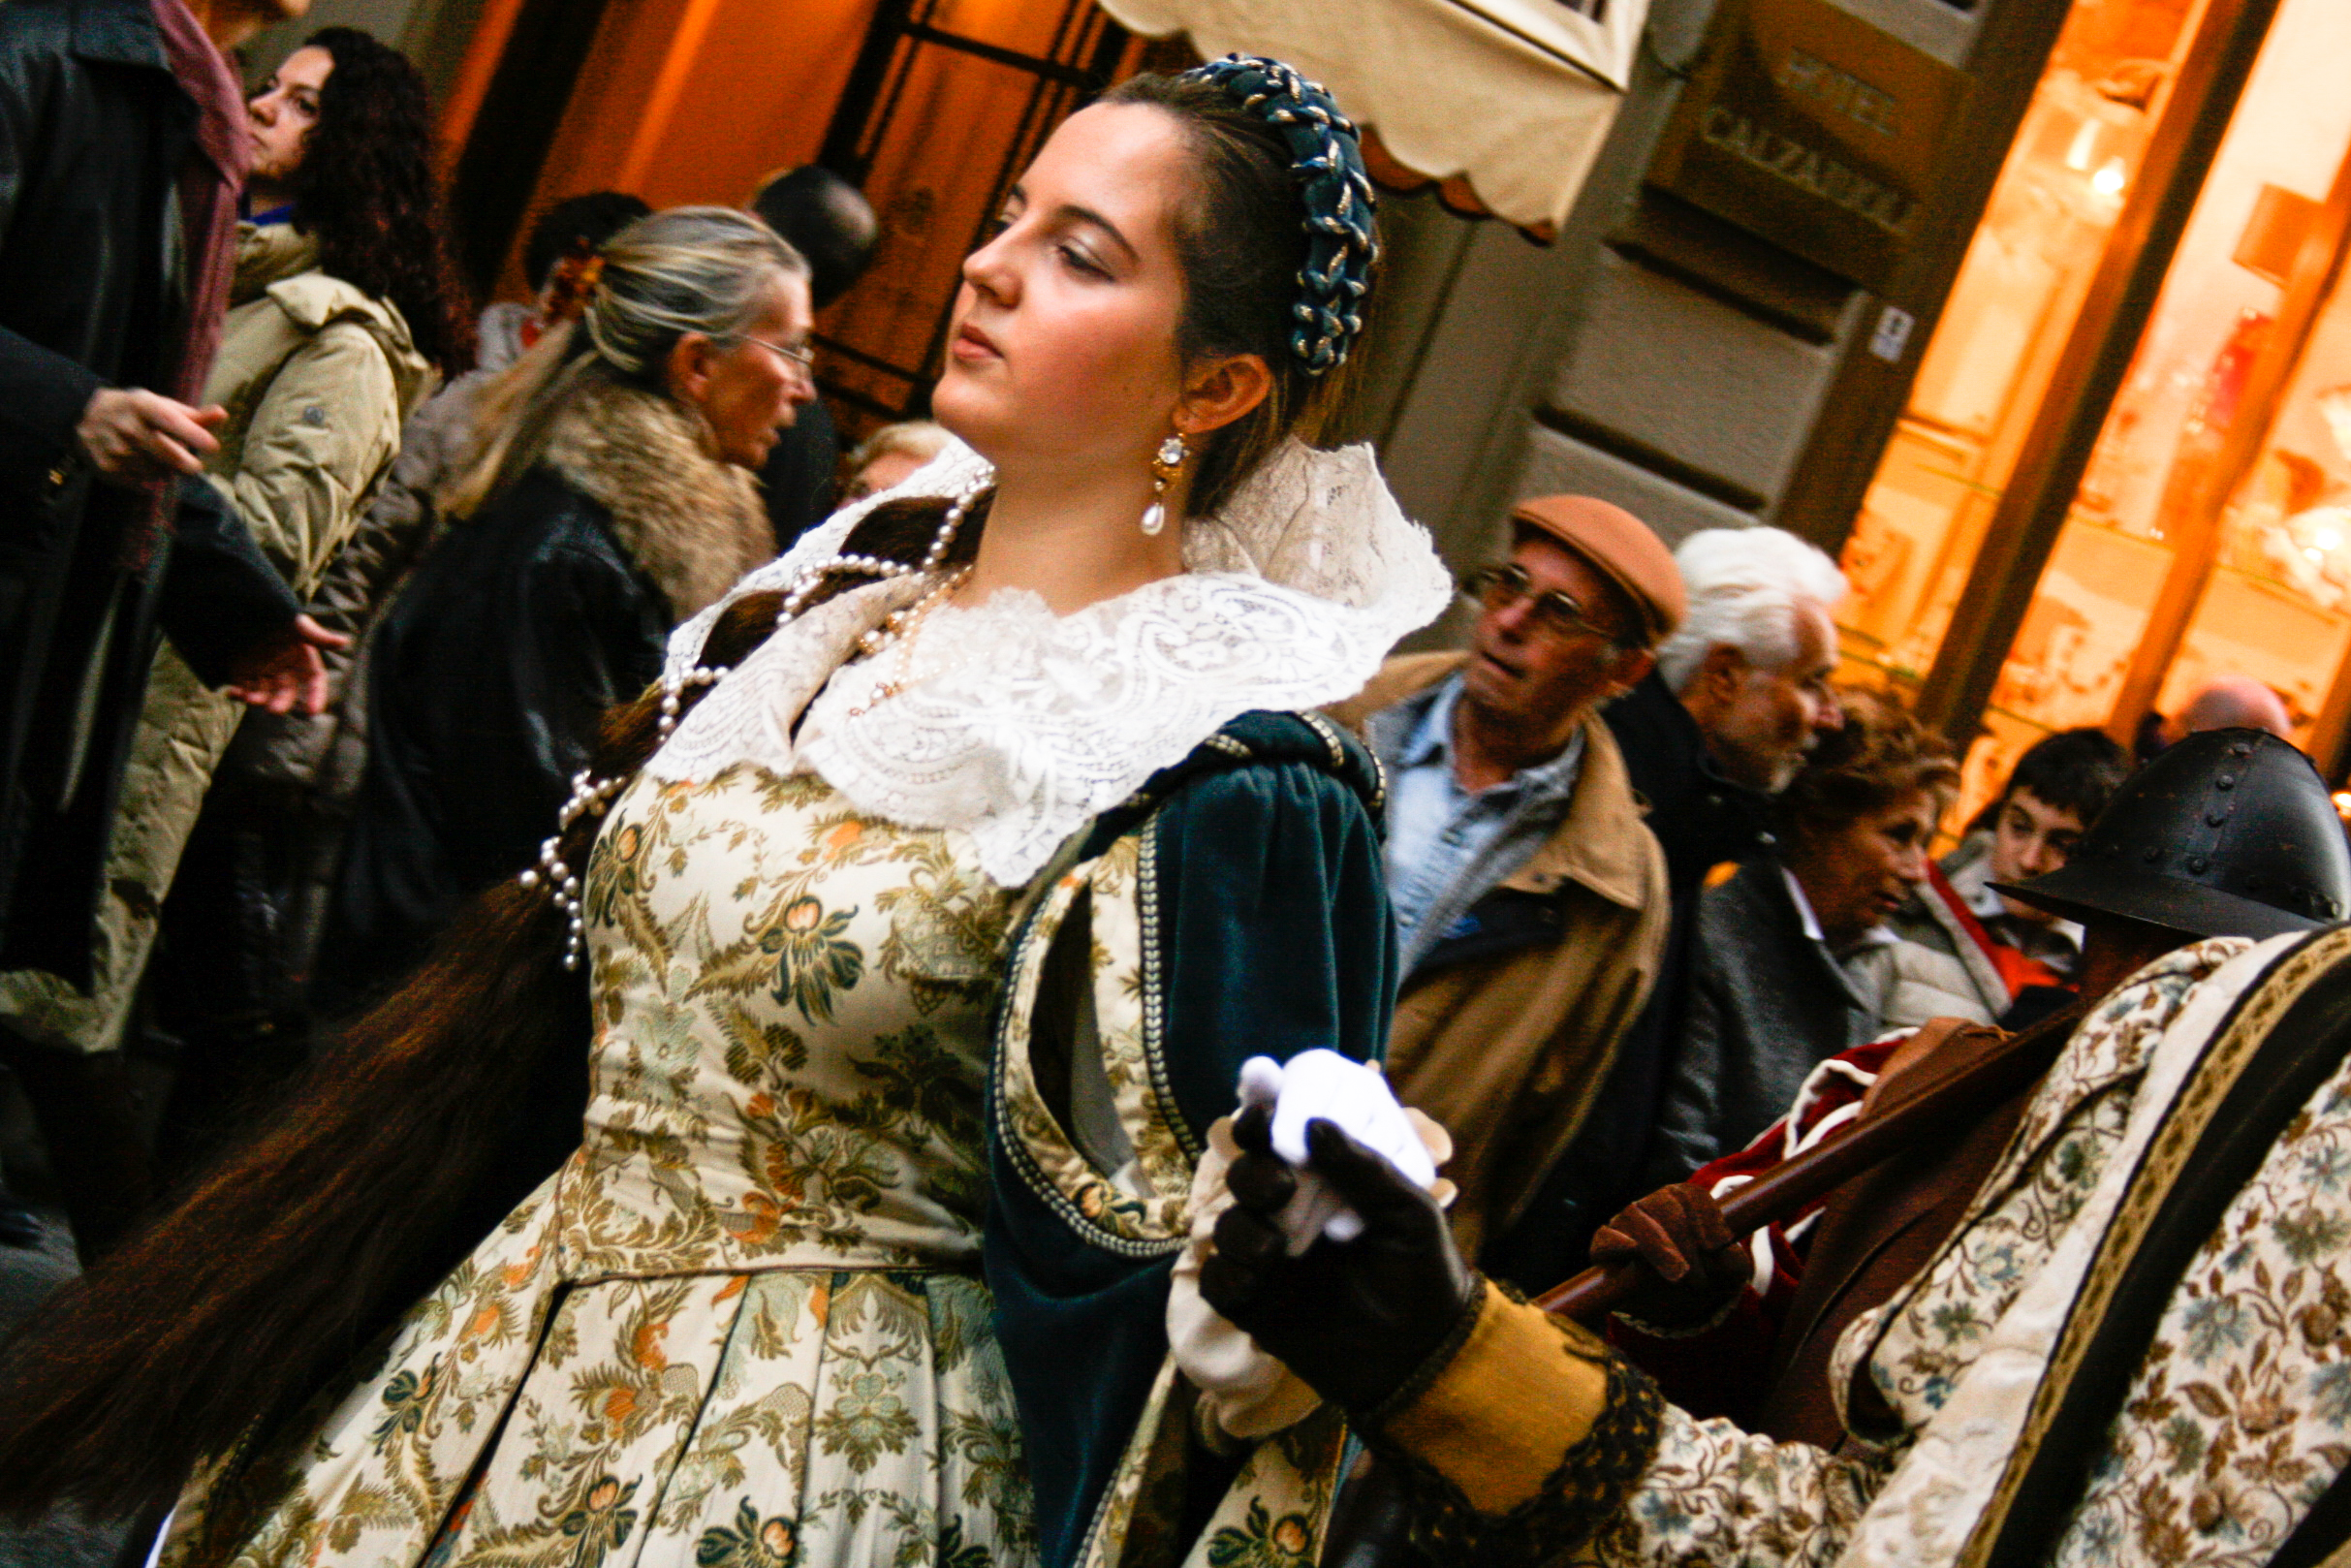 Participants don period costumes and parade through the streets of Florence